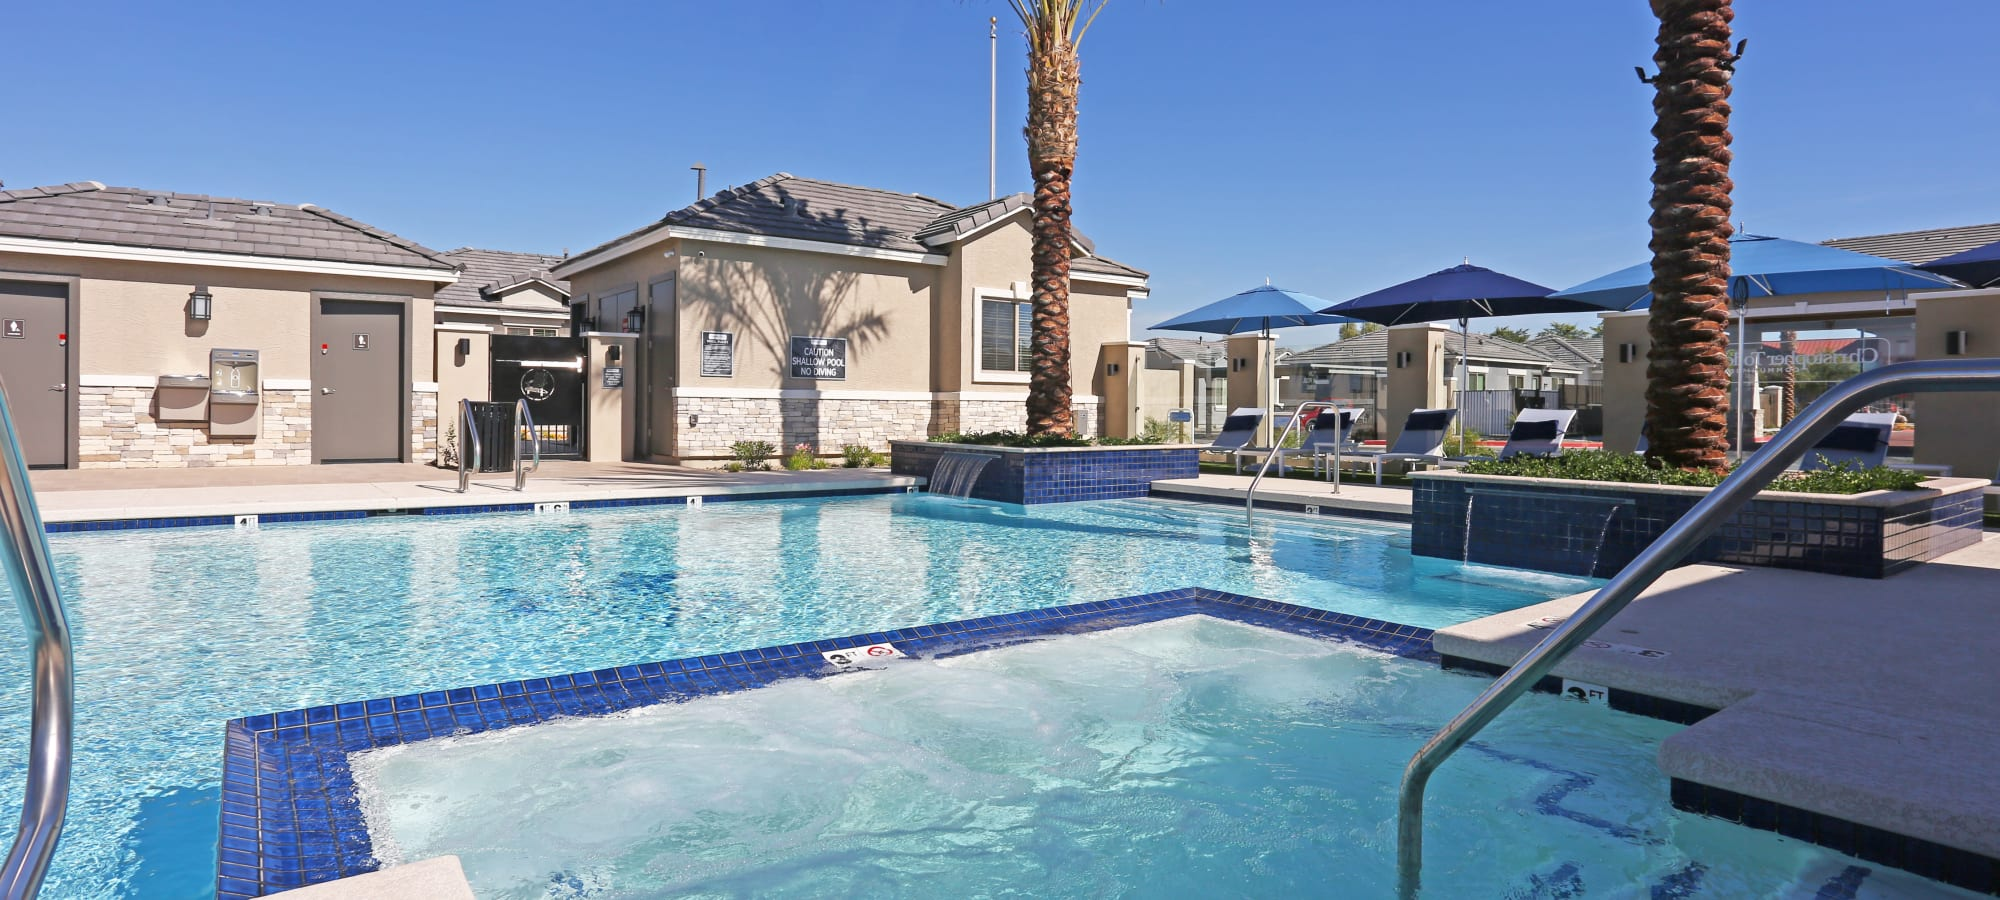 Pool and adjacent spa at Christopher Todd Communities At Estrella Commons in Goodyear, Arizona